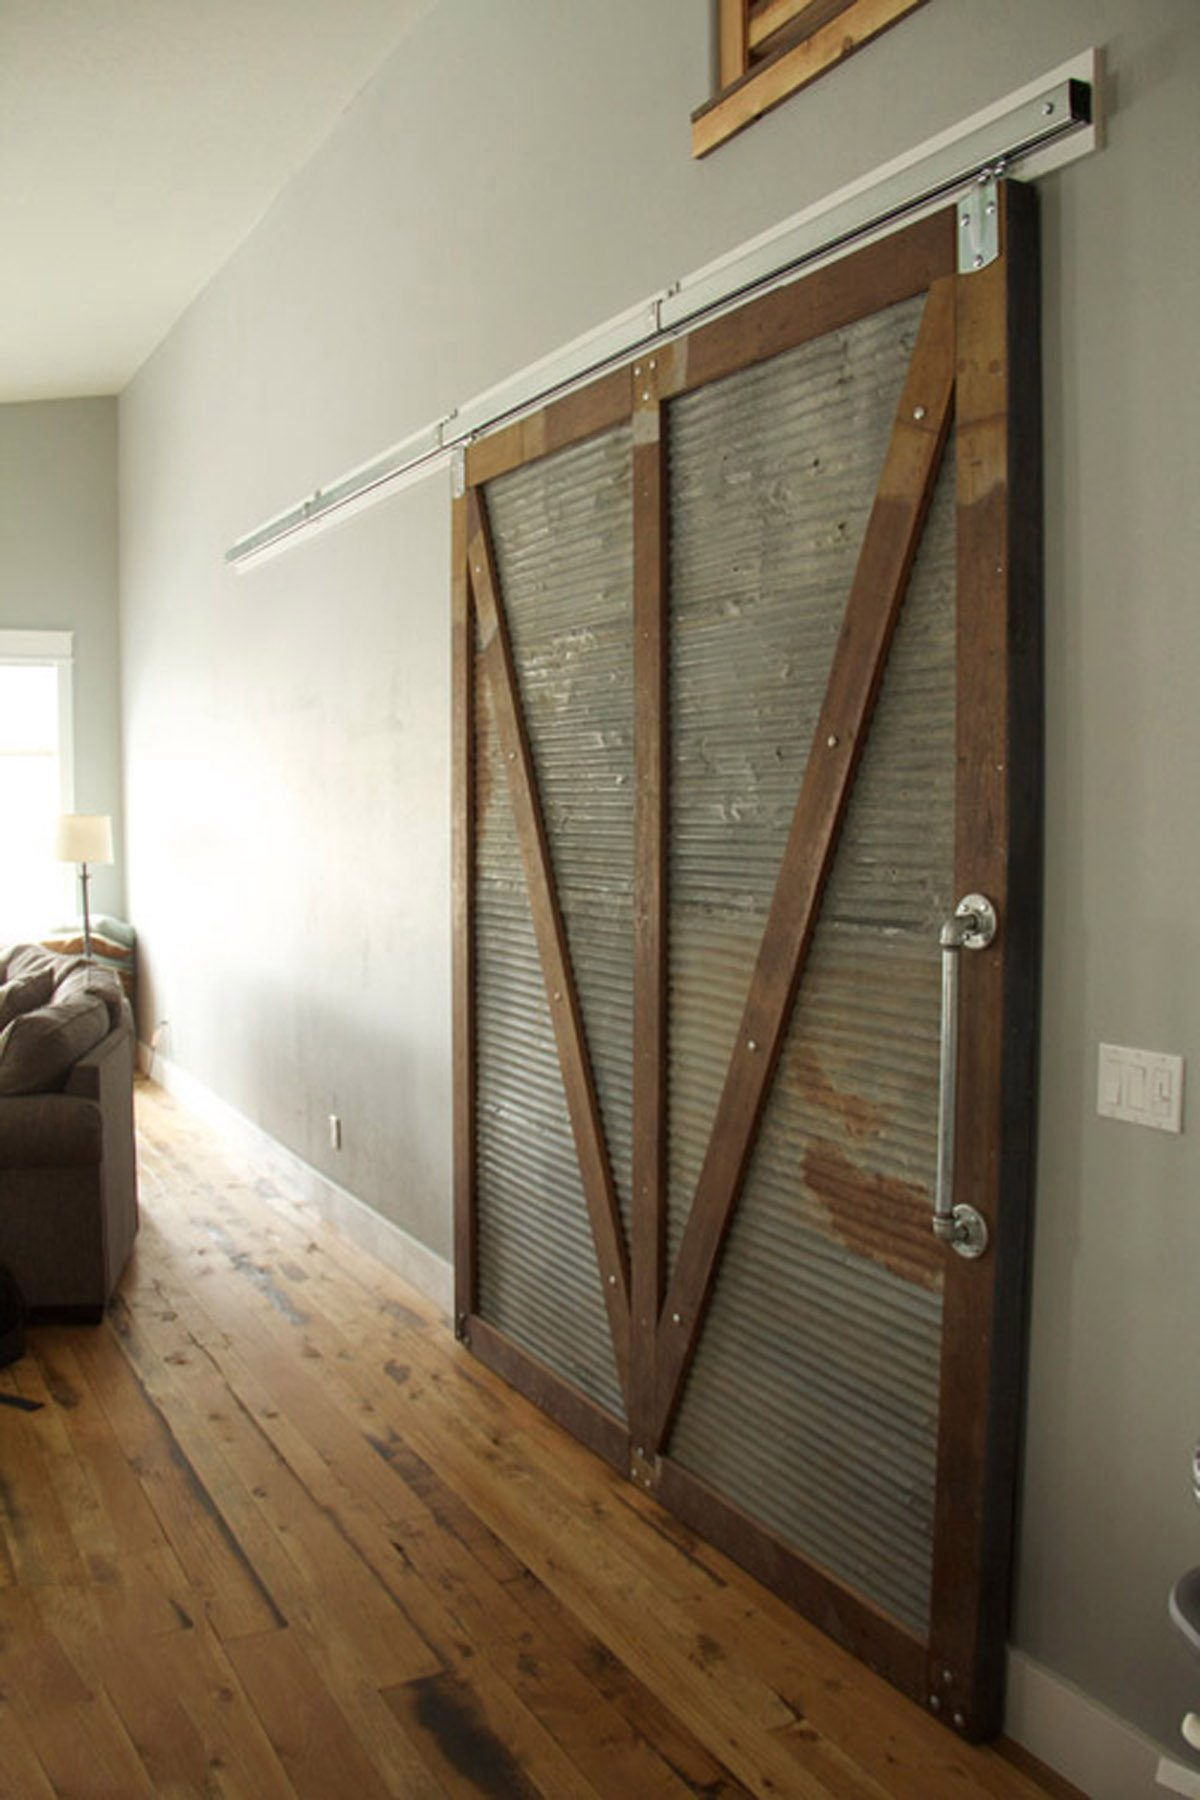 Sliding Barn Door Designs: Grain Designs